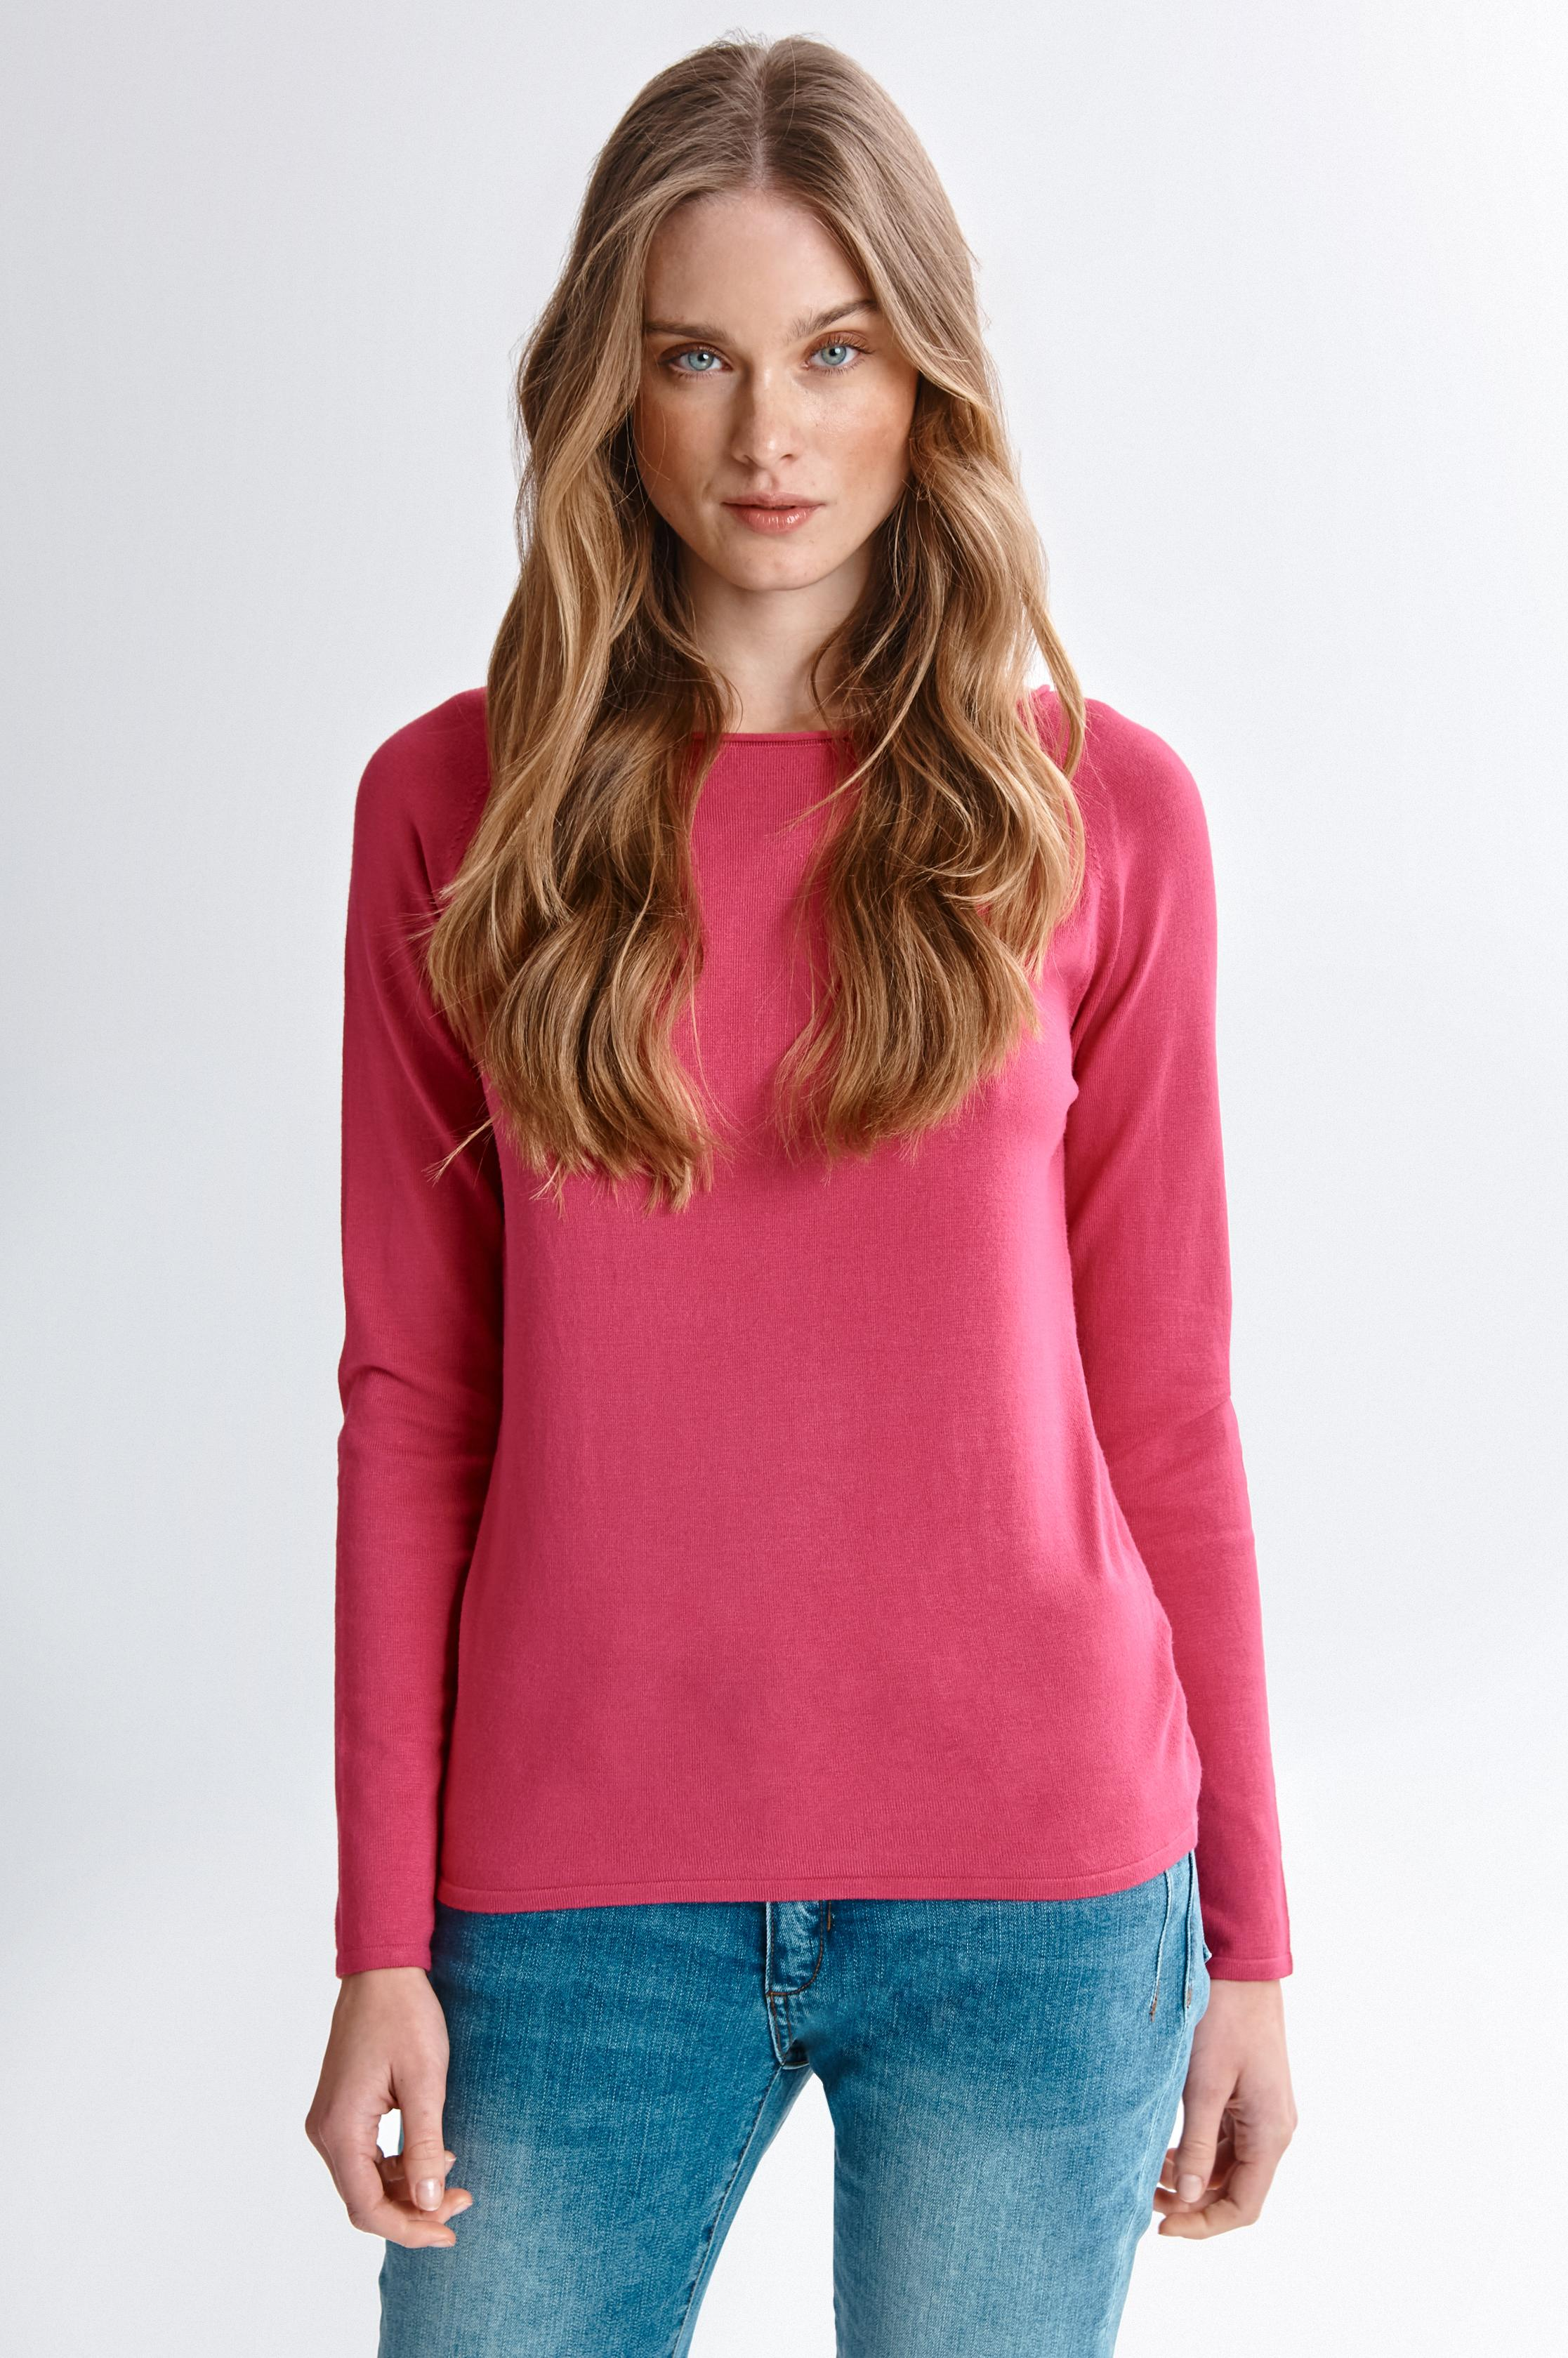 LADIES' SWEATER KAROLA 1